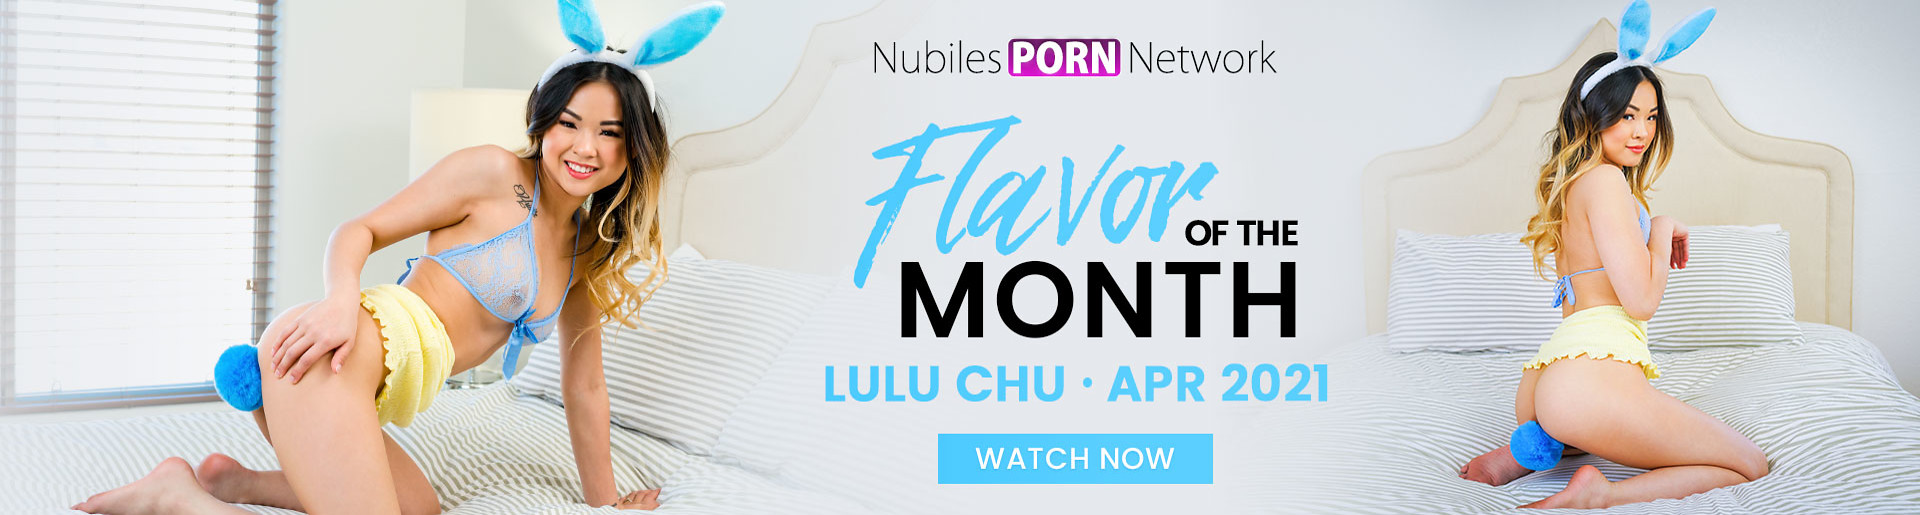 April 2021 Flavor Of The Month Lulu Chu